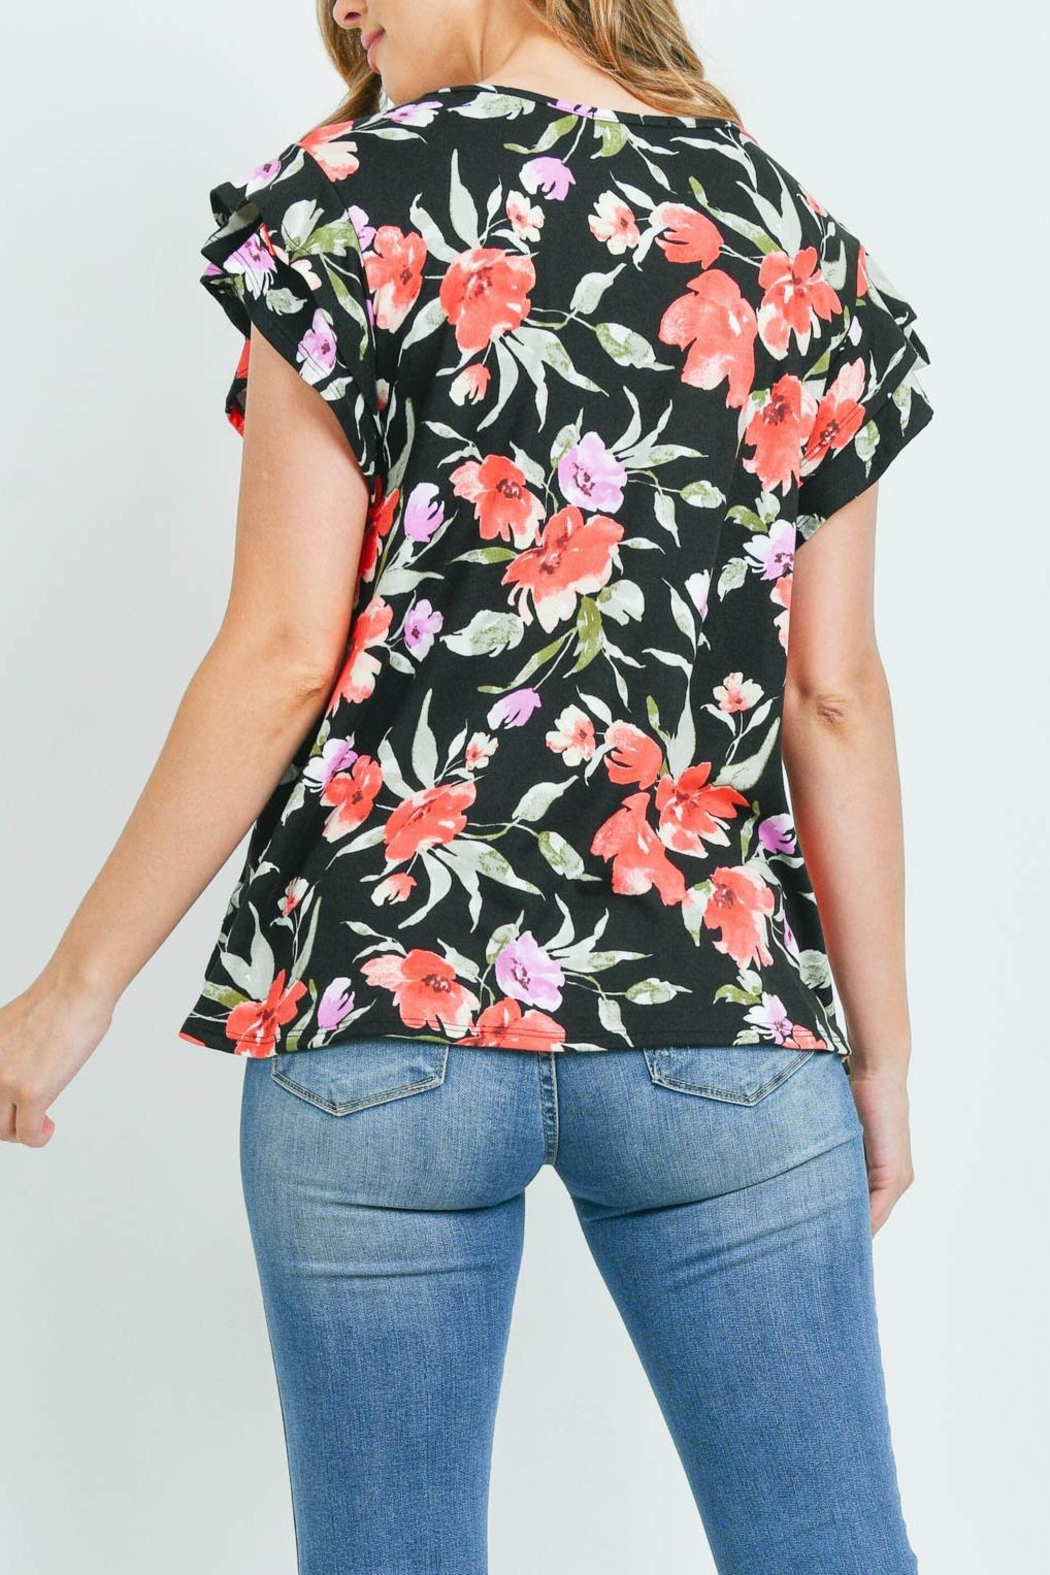 Riah Fashion Painterly Floral Print Cap Sleeve Top - Front Full Image